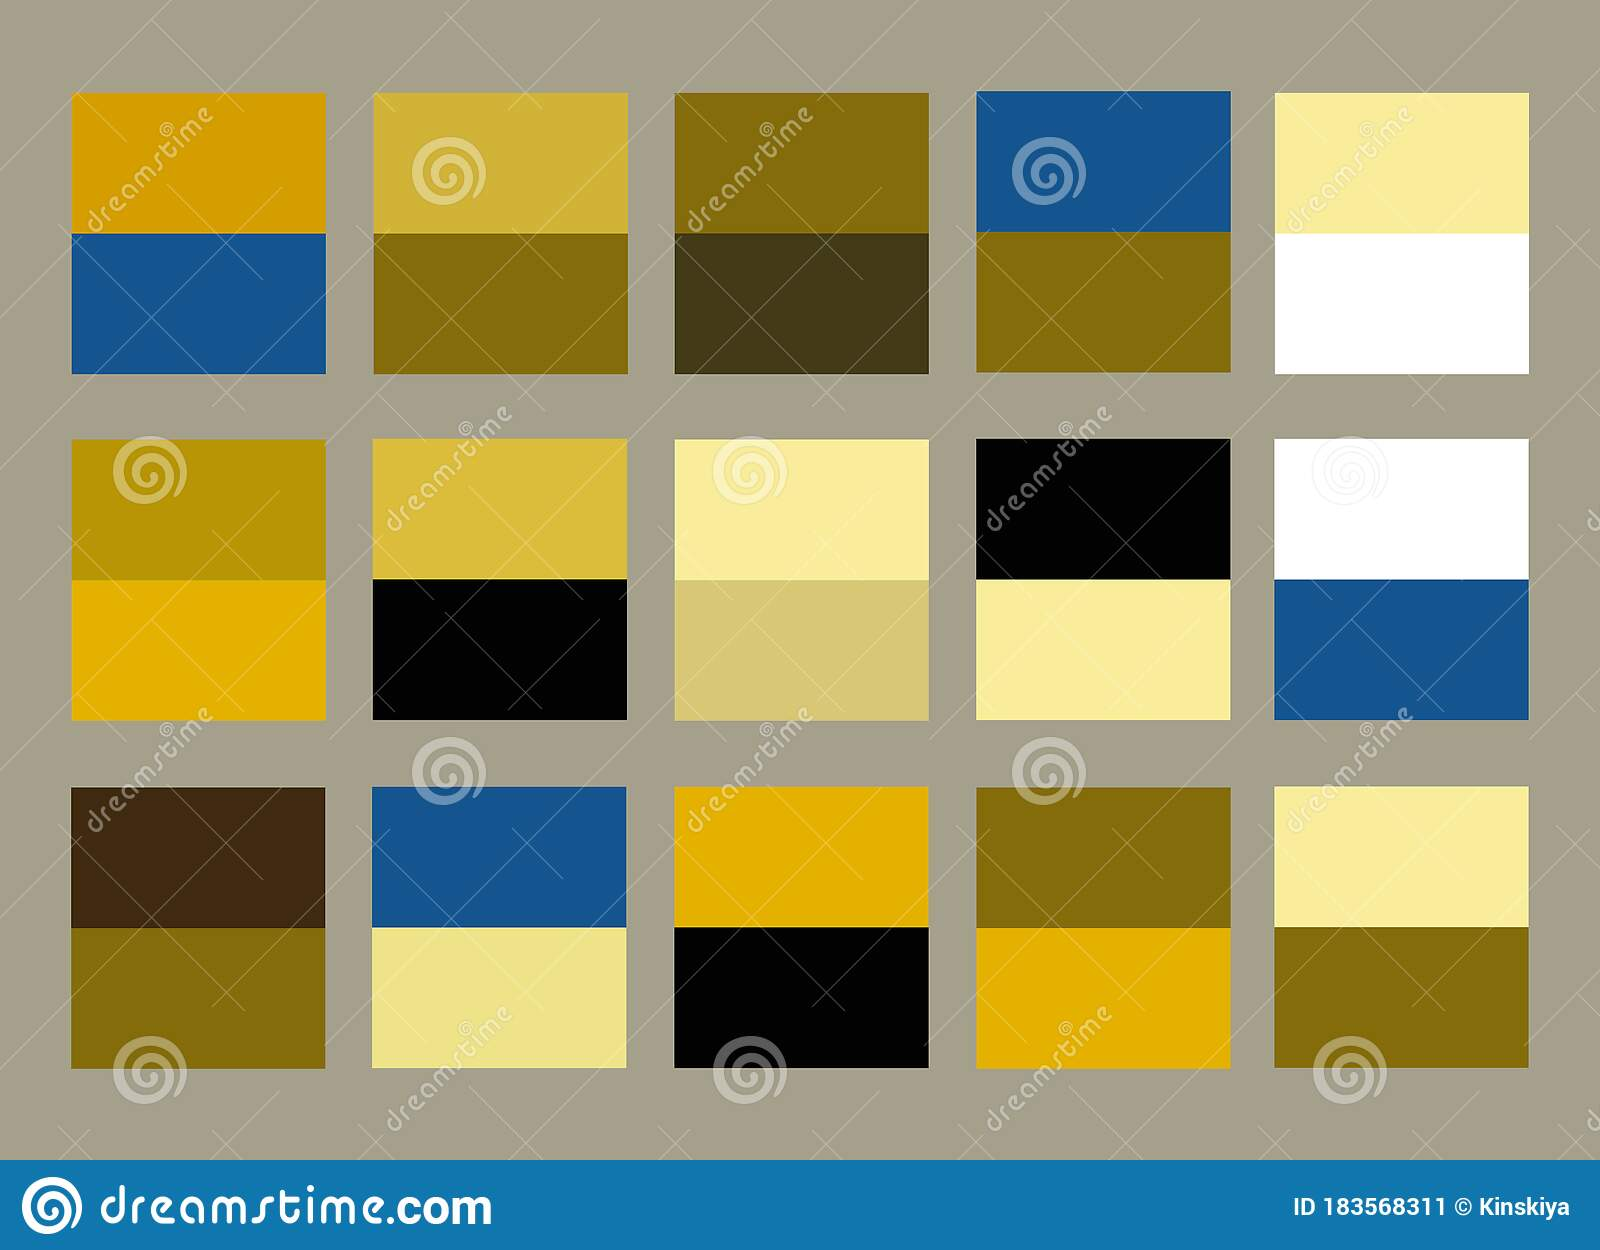 Bright Color Palette Guide Golden Yellow Blue And Beige Cream Color Palettes Scheme Set Packaging Design Stock Vector Illustration Of Guide Cream 183568311